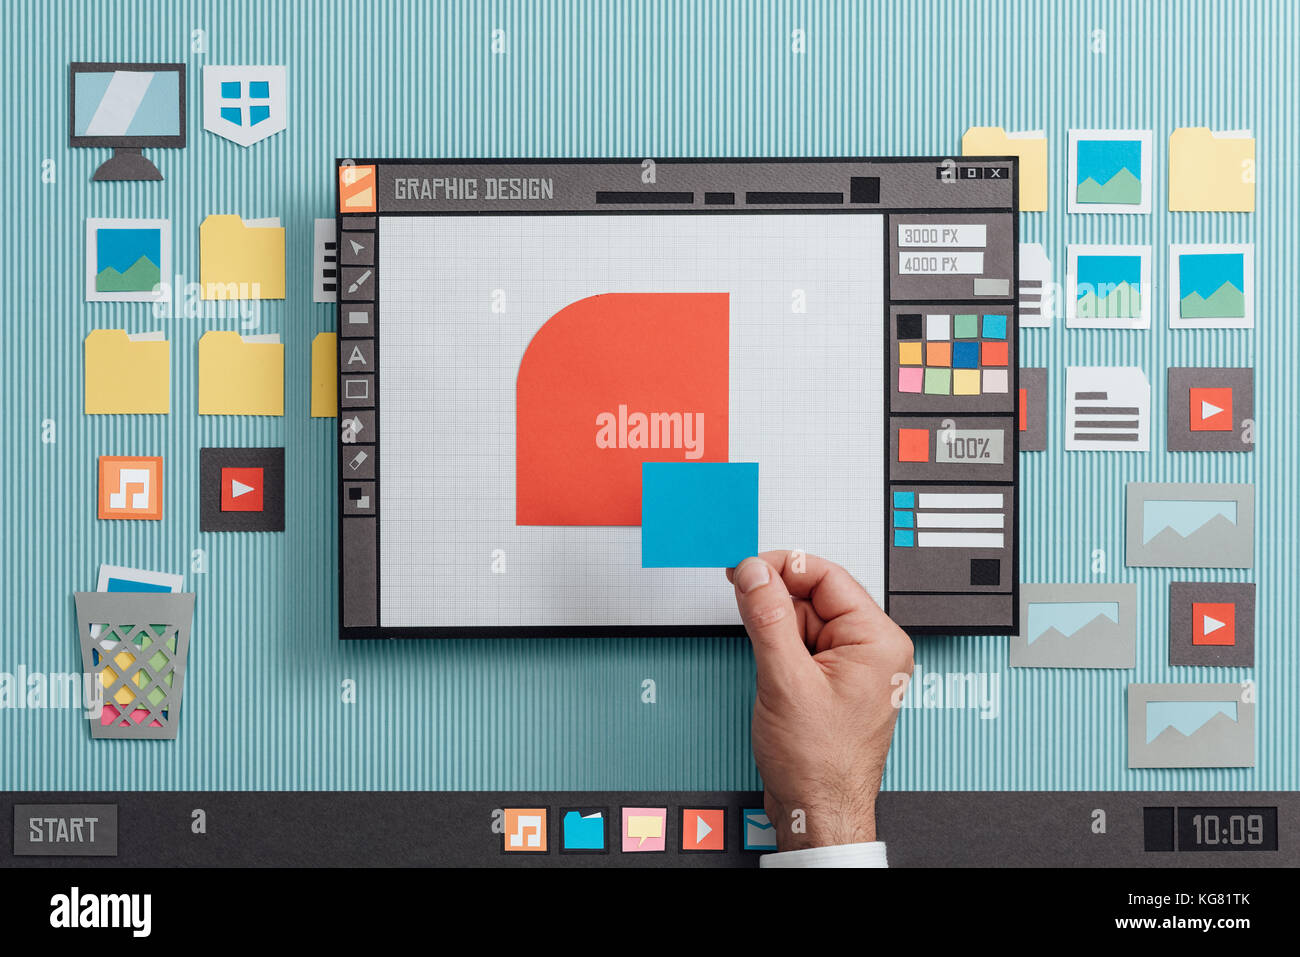 Graphic Design And Vector Illustration Software Interface A Designer Stock Photo Alamy